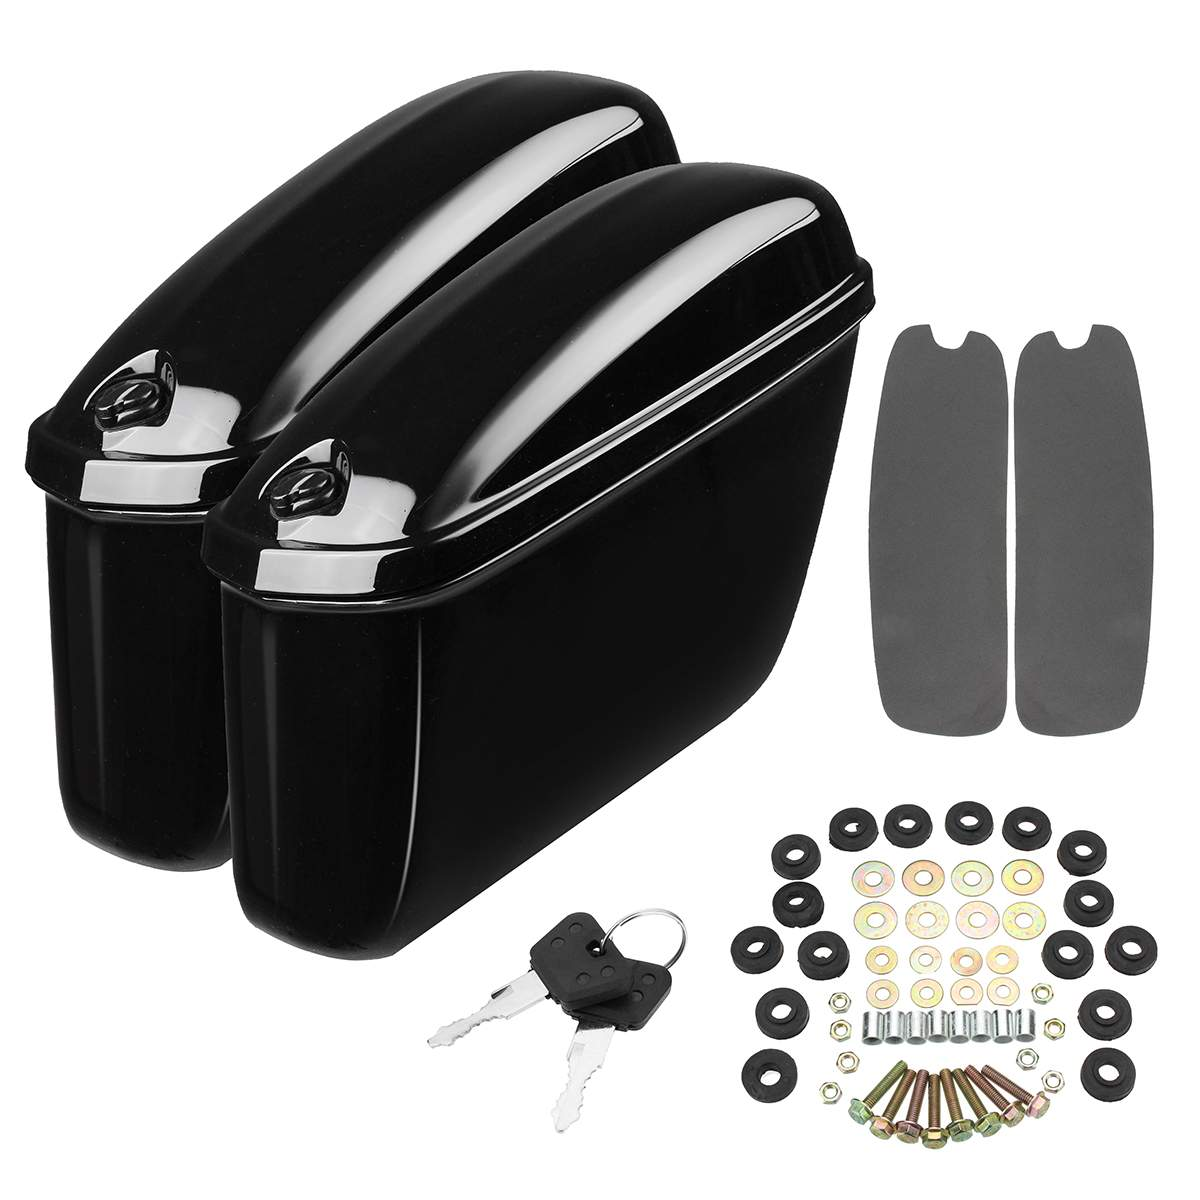 Pair Motorcycle Saddlebags Side Trunk Hard Box Storage Tool Pouch Luggage Bags for Harley Softail Sportster